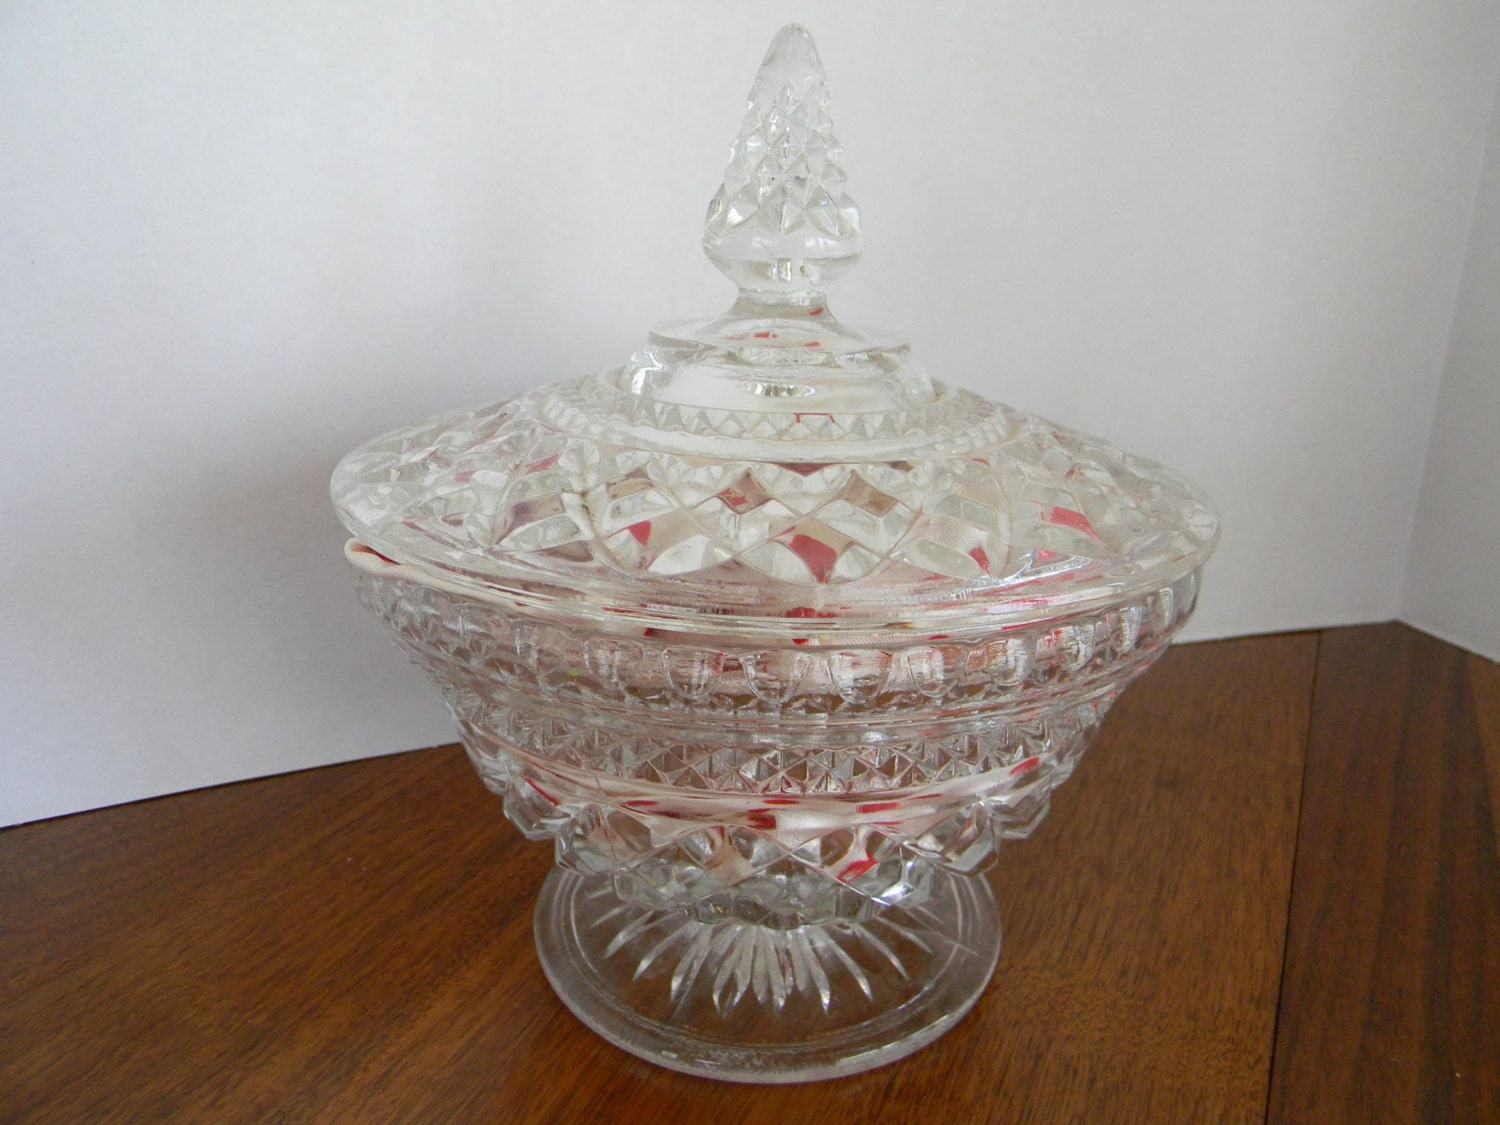 Clearance sale candy dish holiday decor by pickerchicks on for Cheap christmas decorations sale